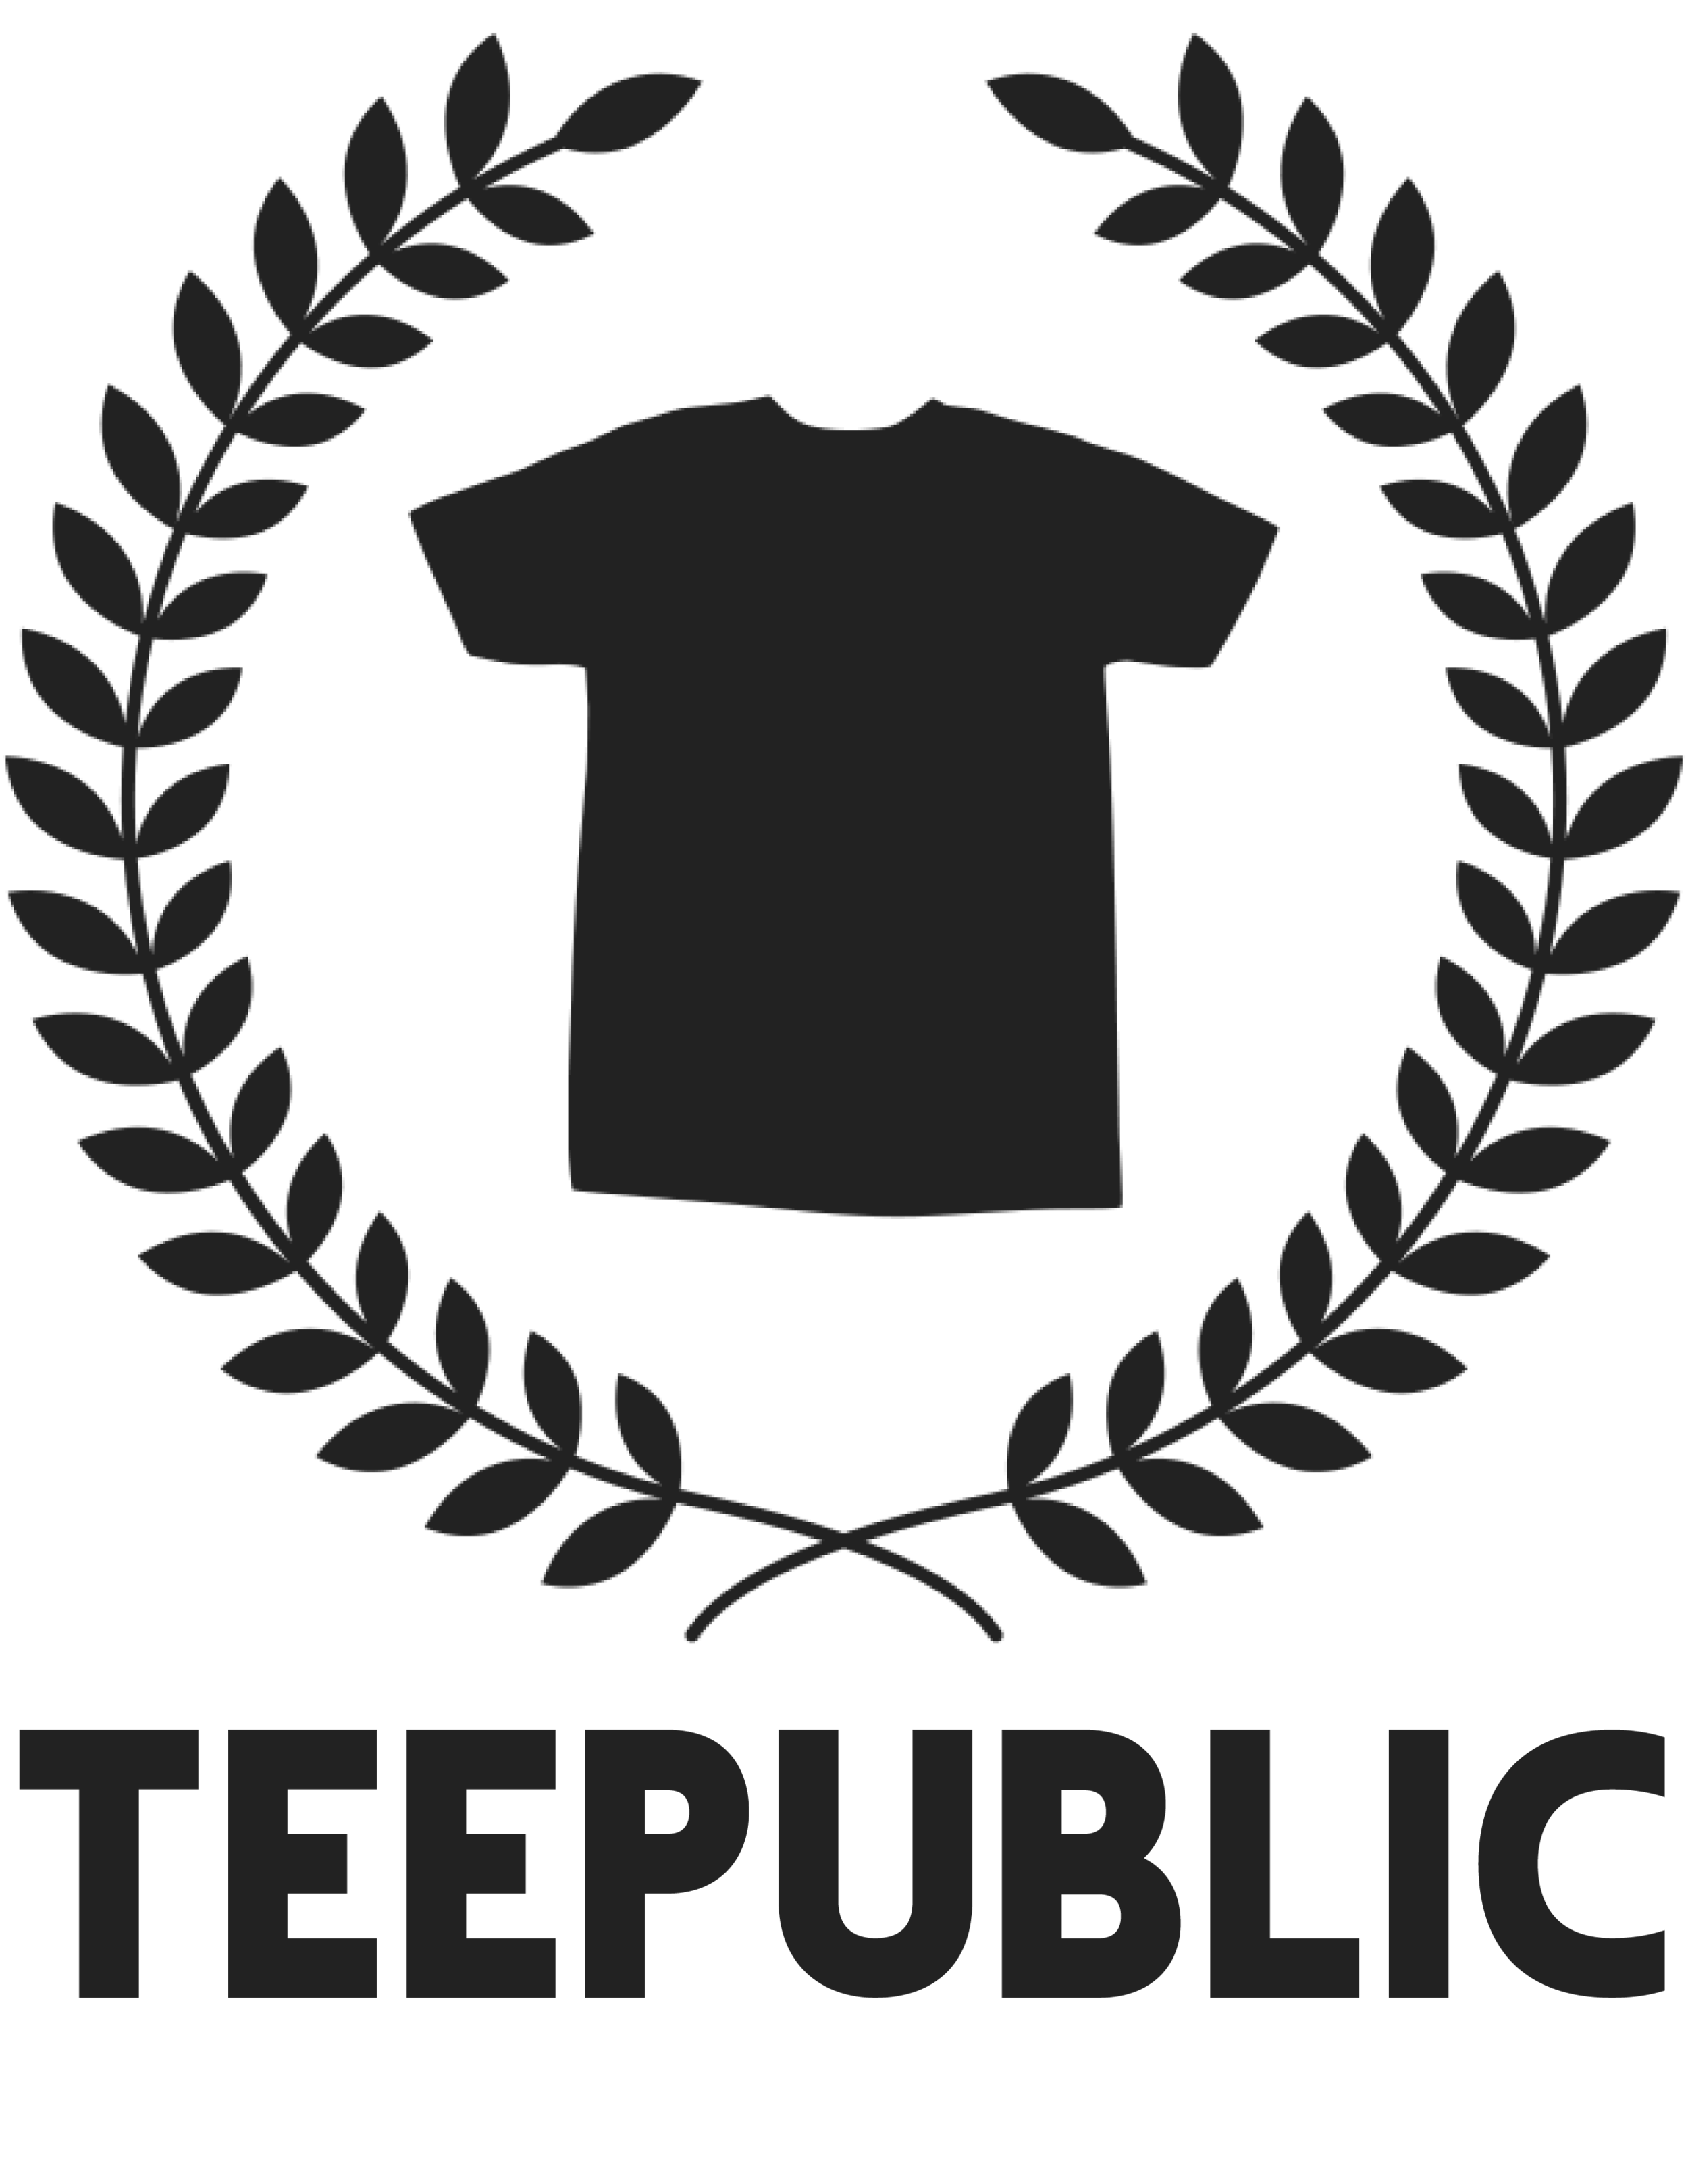 TeePublic-Wreath_Logo.png